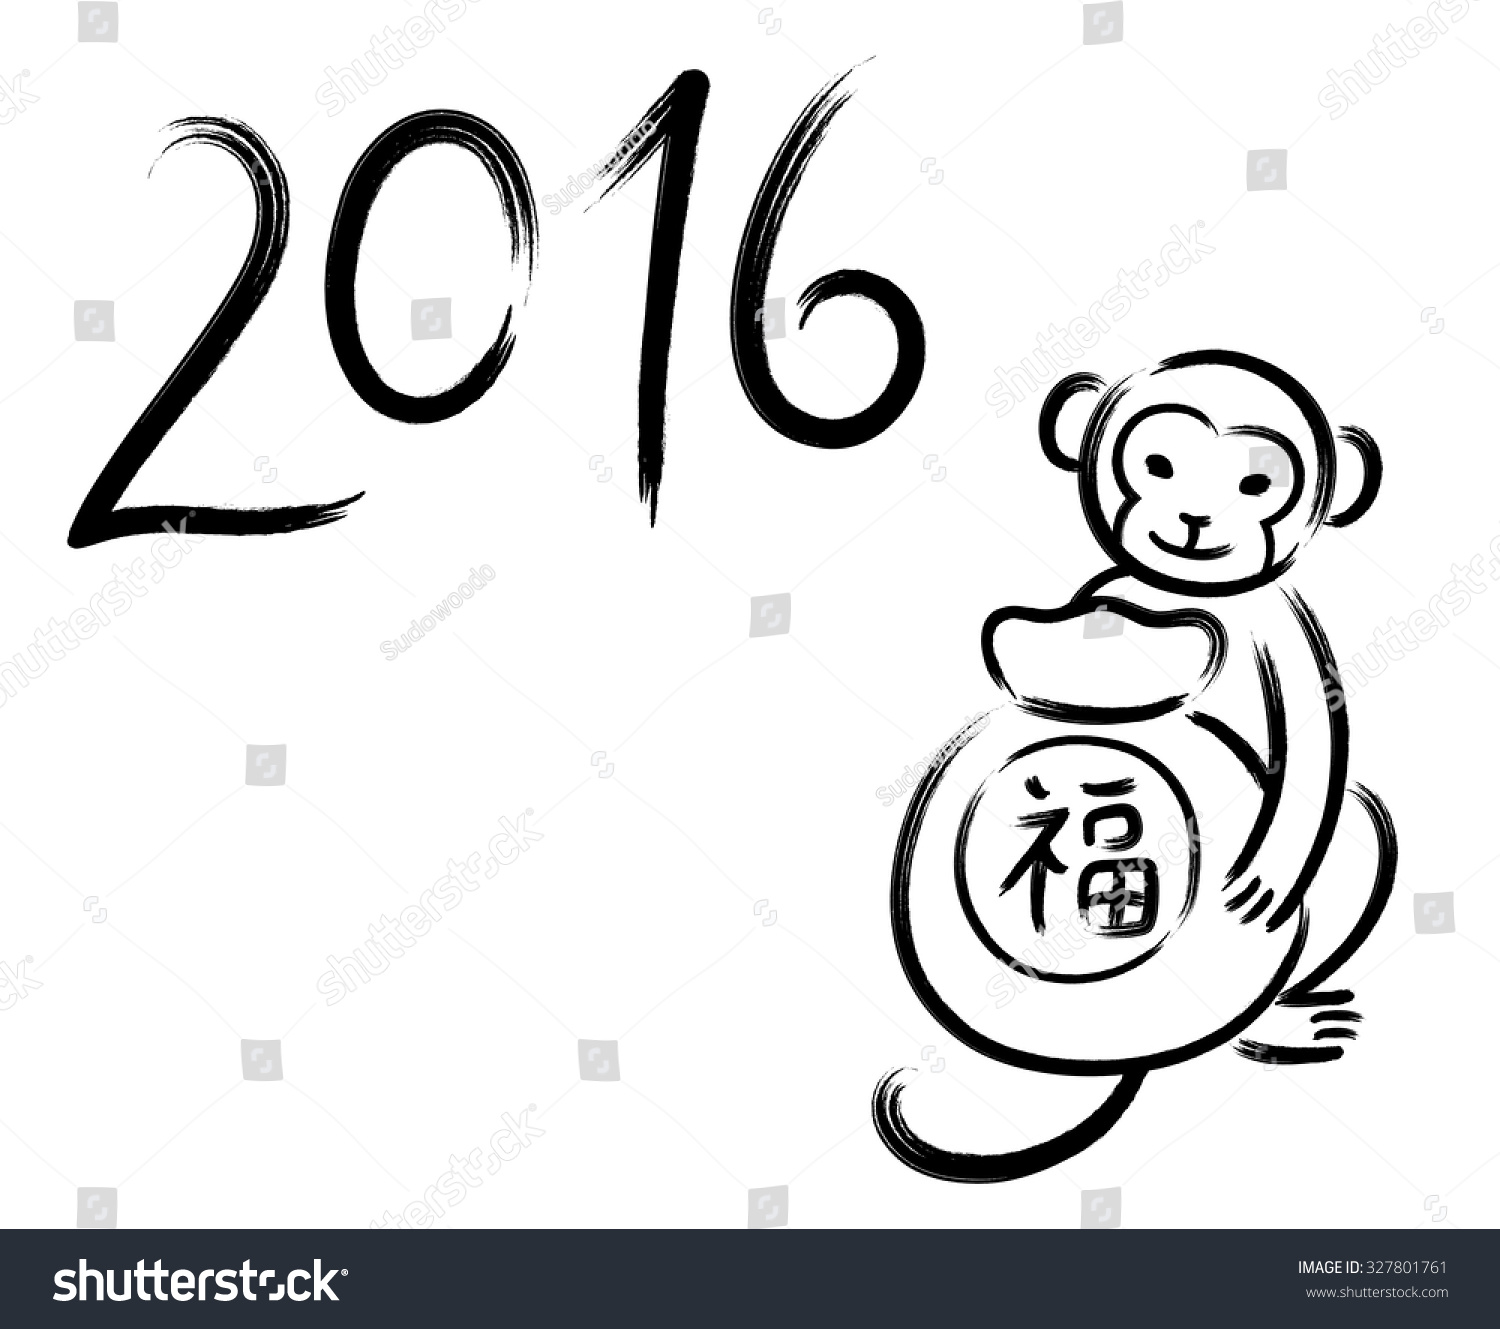 chinese new year 2016 zodiac symbol monkey with bag of gifts in hand drawn calligraphy - Chinese New Year 2016 Zodiac